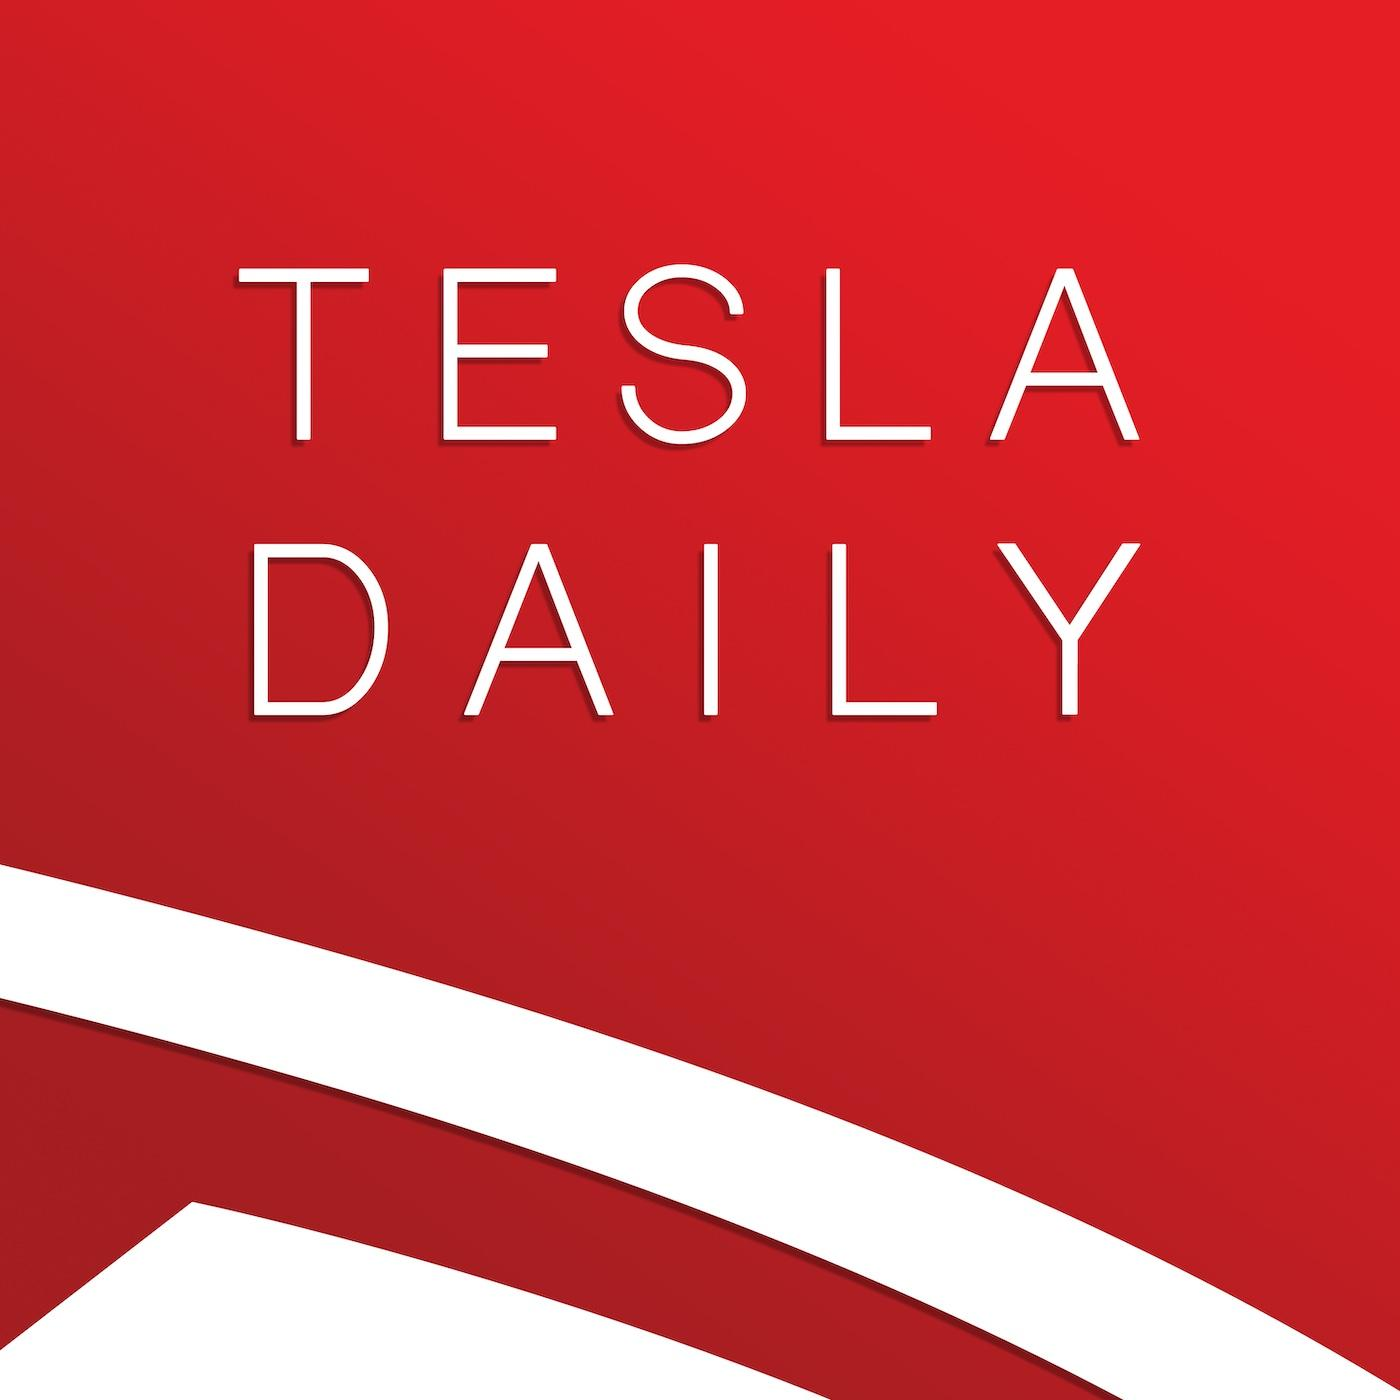 Latest on Tesla's Production, Semiconductor Supply, Jaguar's Misleading EV Plans + SpaceX Updates (02.26.21)